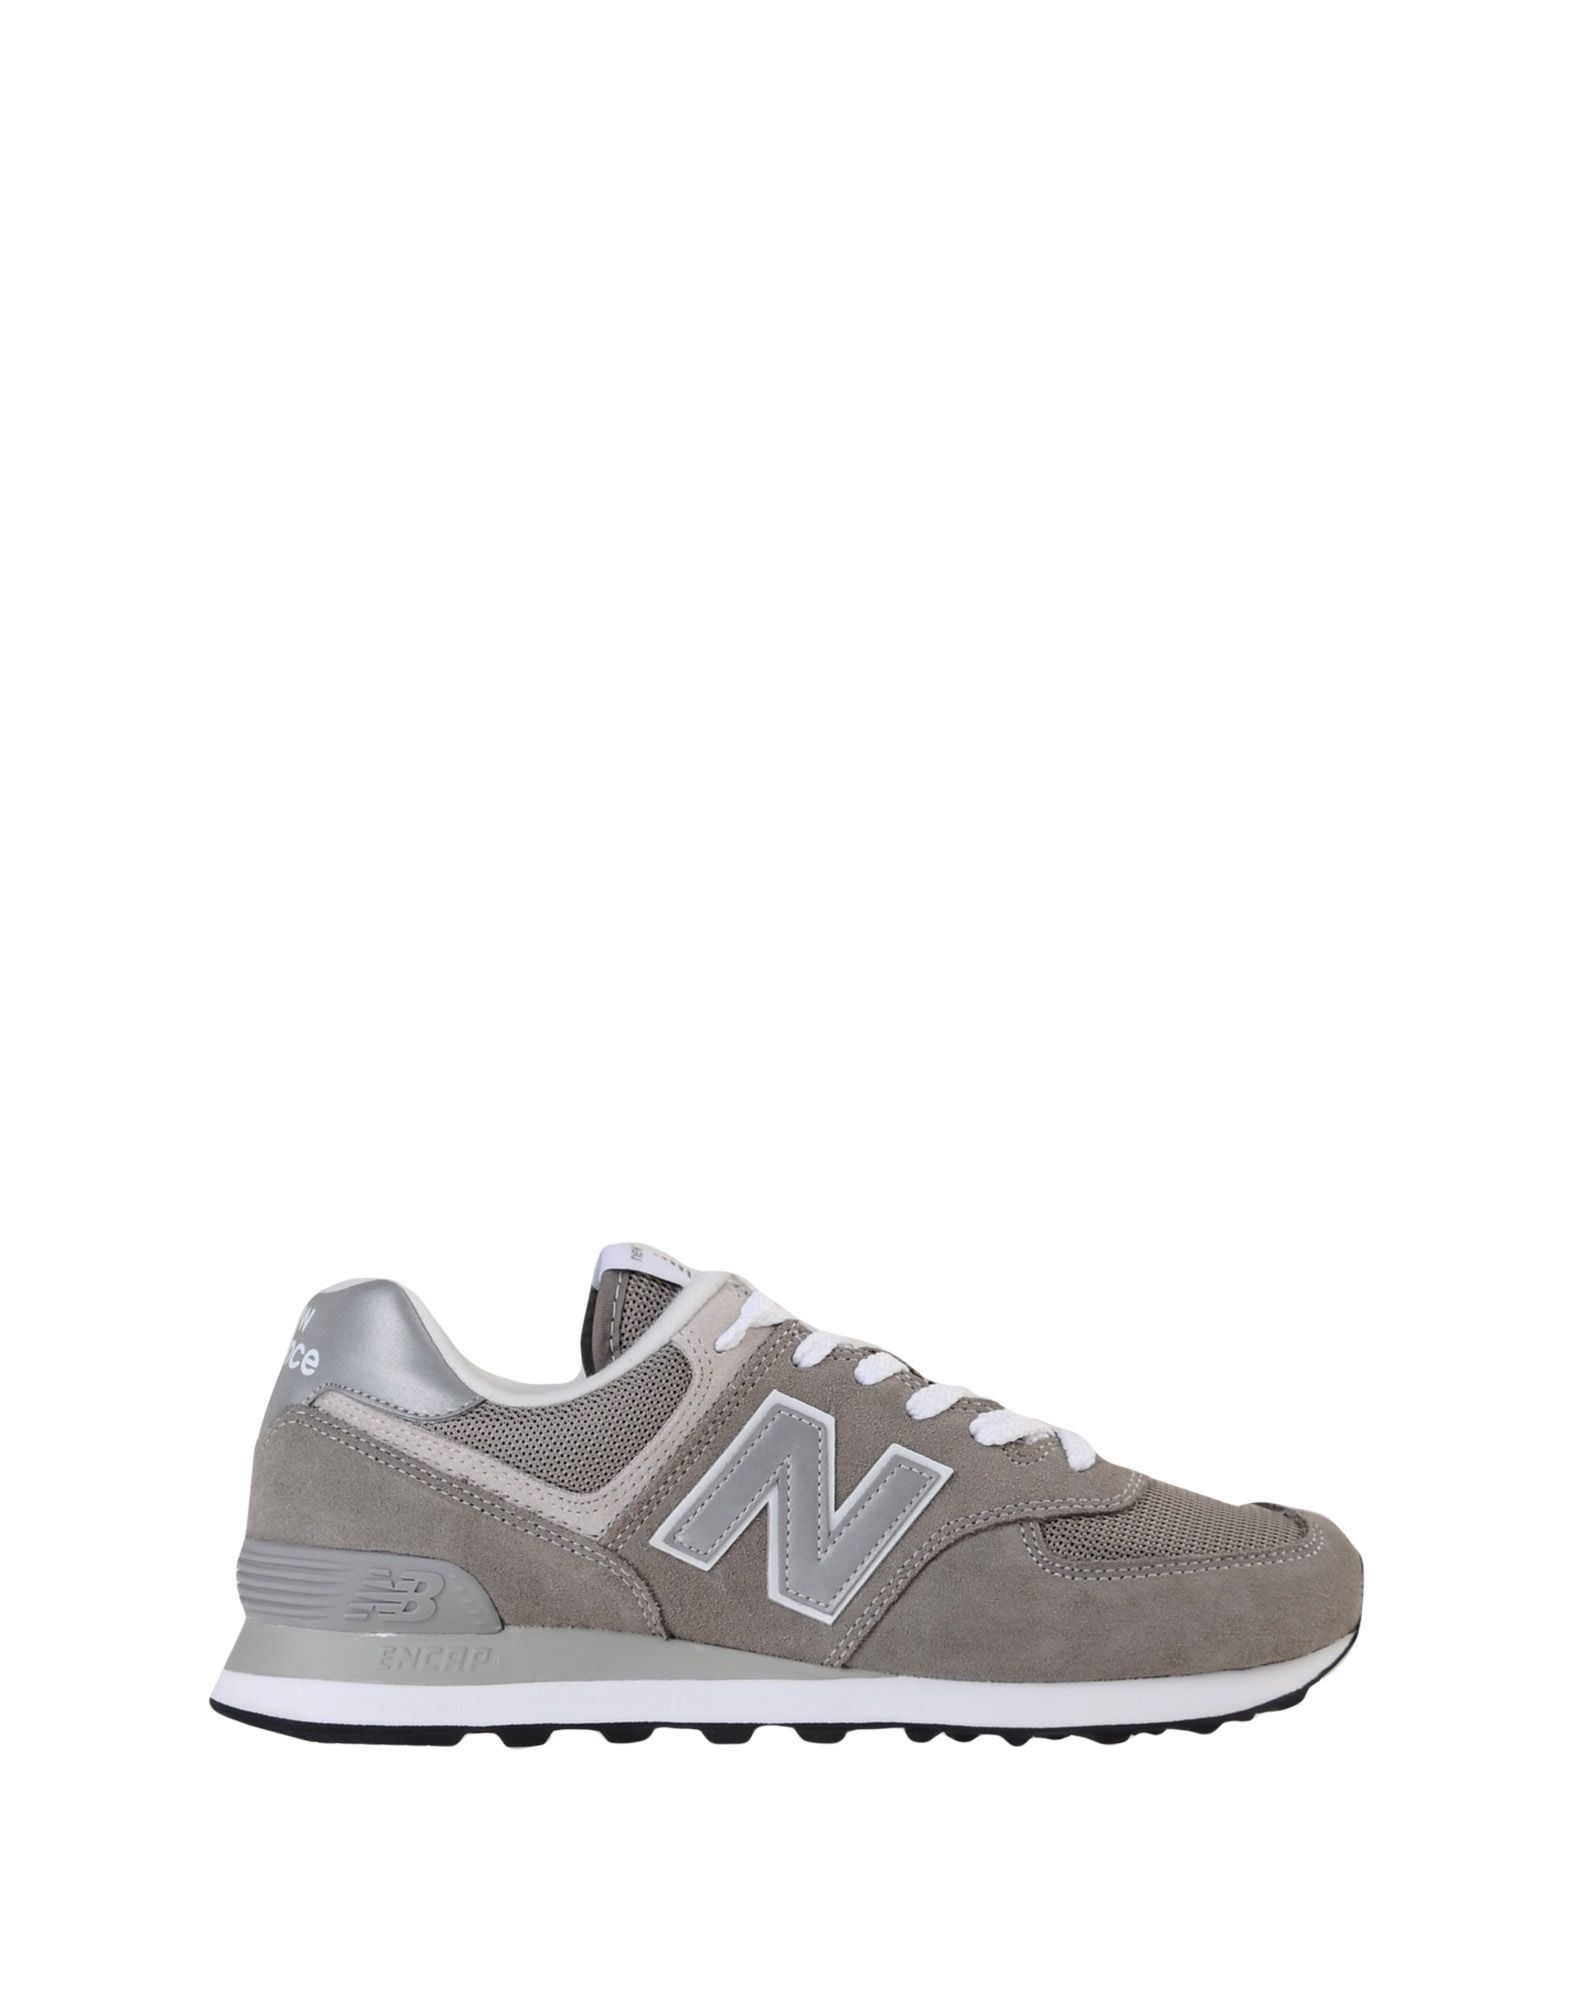 Sneakers New Balance 574 Grey Icon - Femme - Sneakers New Balance sur